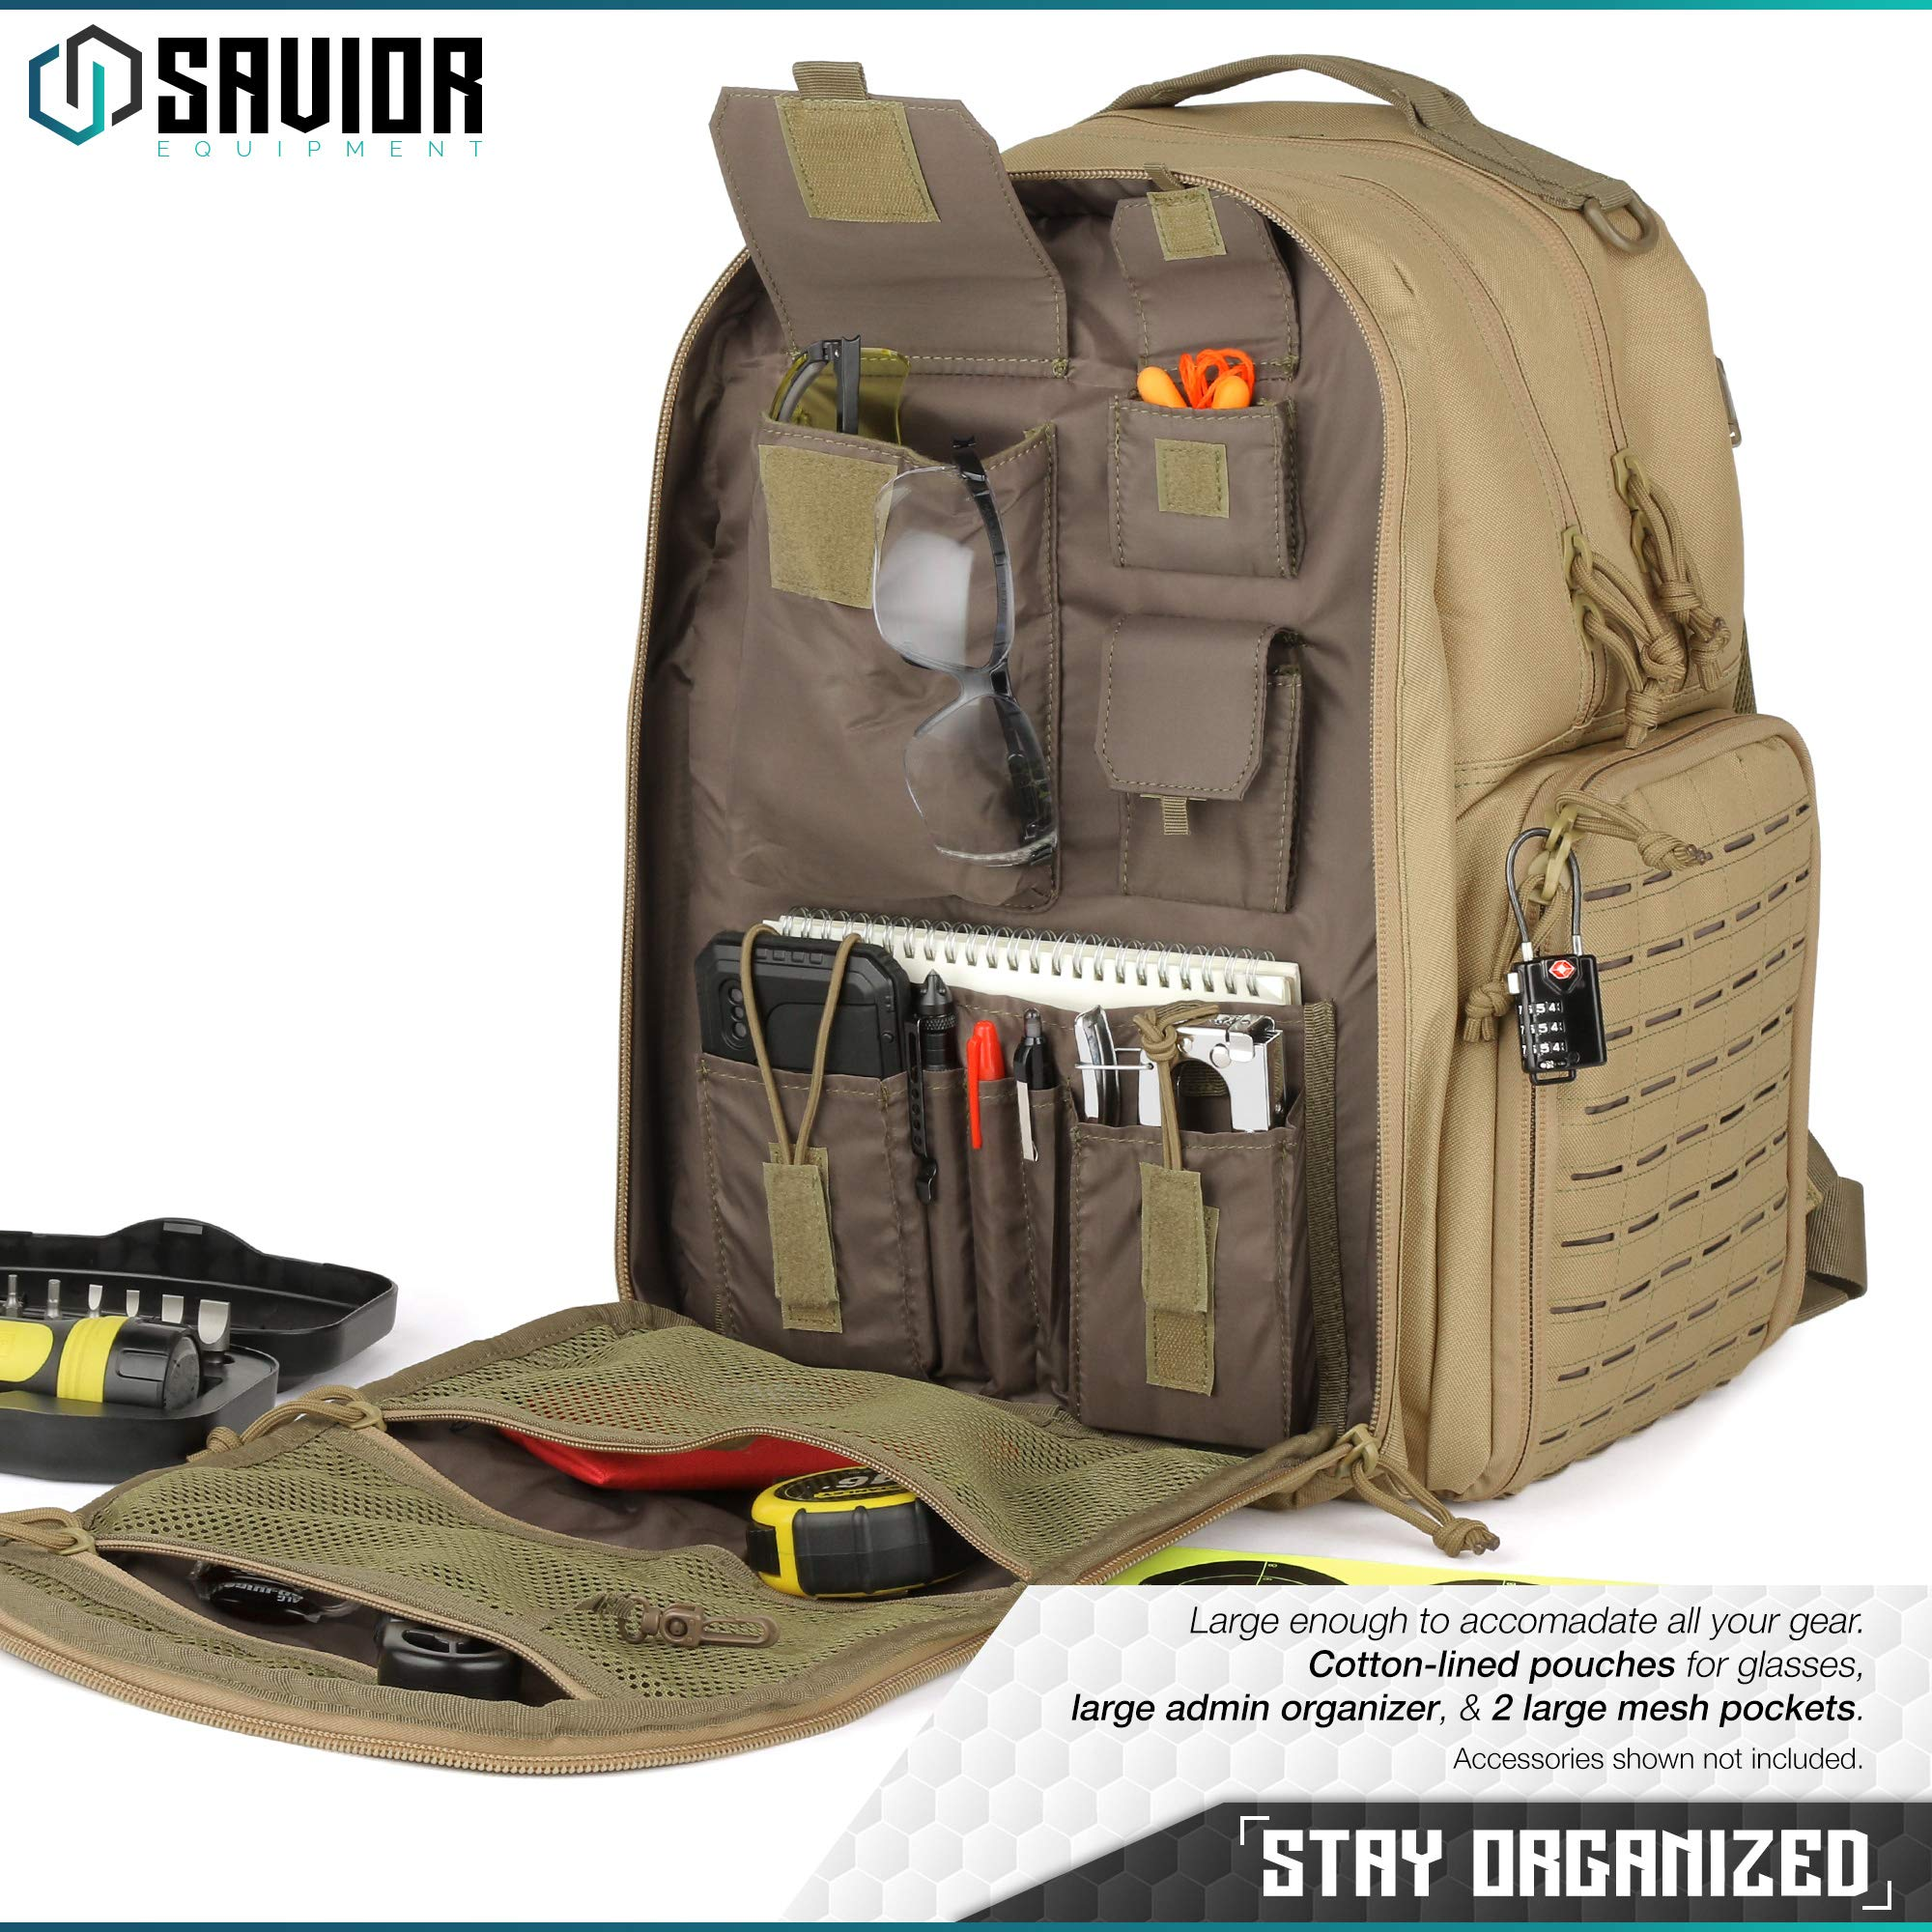 Savior Equipment Mobile Arsenal SEMA 27L Military Heavy-Duty Tactical Range Bag Backpack w/ 3 Separate Pistol Case - Laser-Cut Style MOLLE & Lockable Zippers, Raincover Included by Savior Equipment (Image #3)